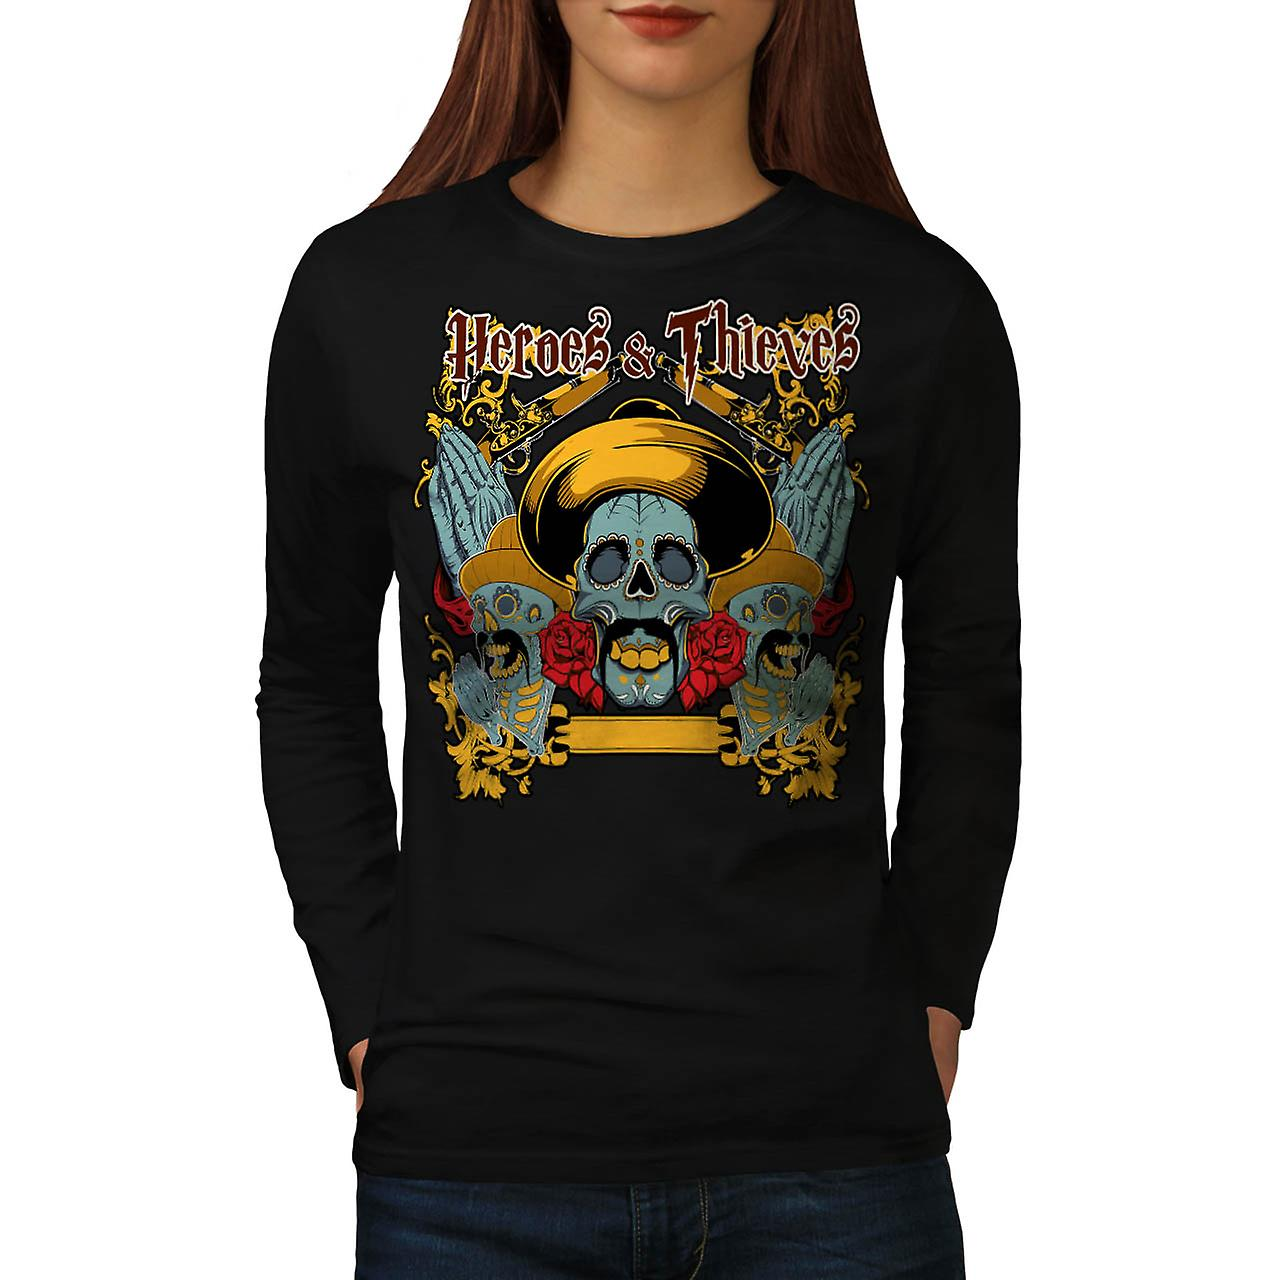 Heroes Thieves Mexico Dead Skull Women Black Long Sleeve T-shirt | Wellcoda